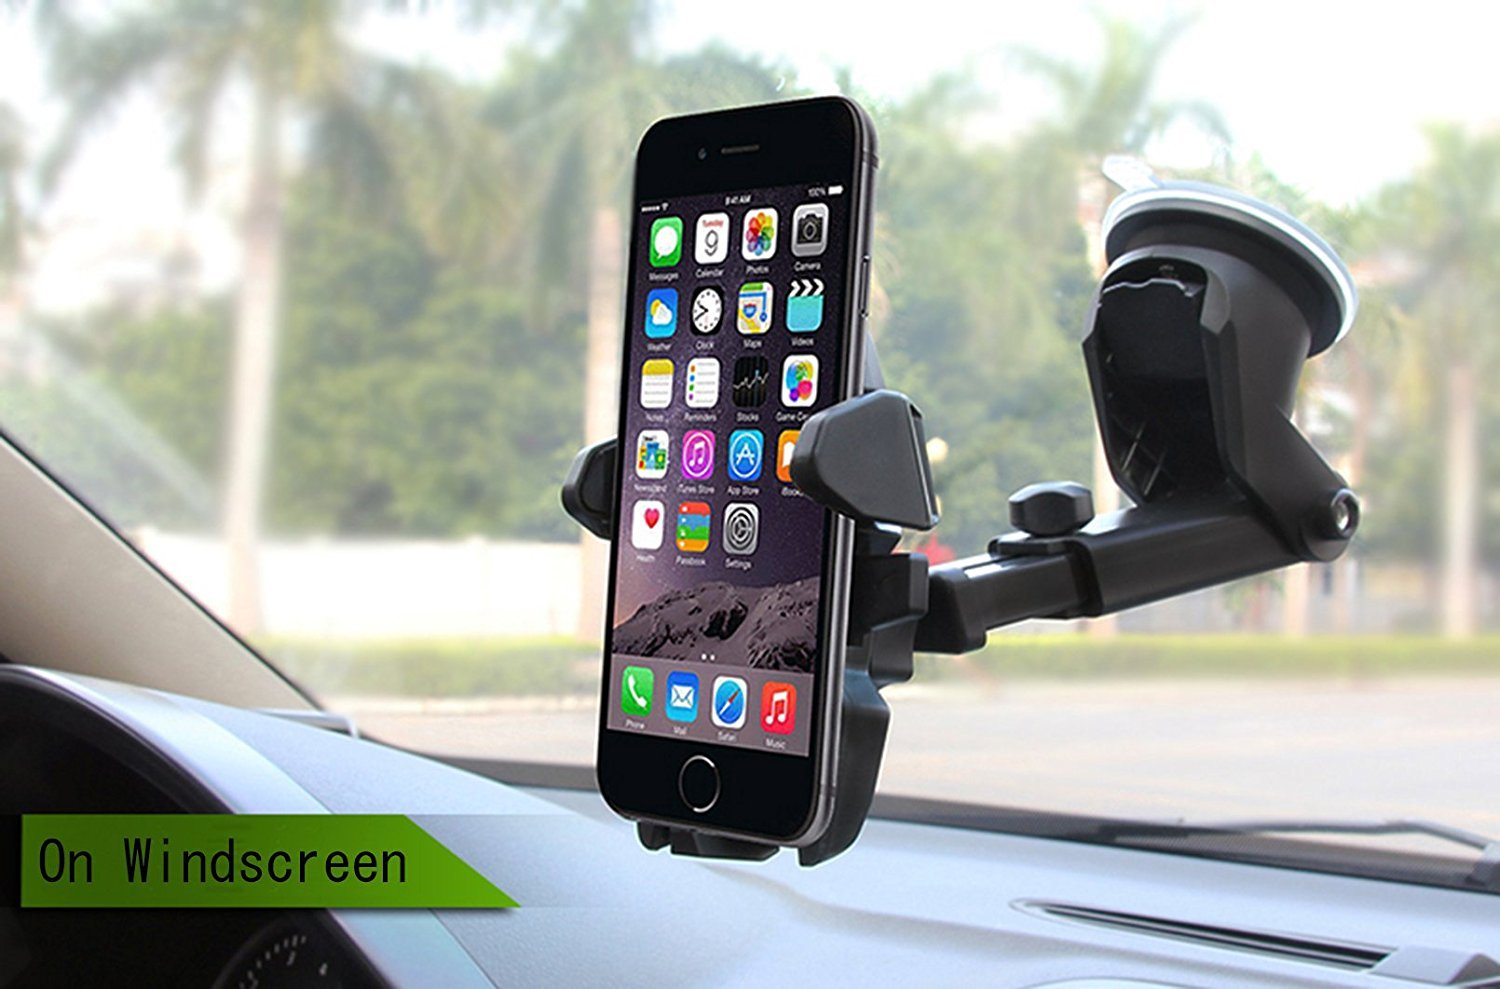 Universal Mobile Car Phone Holder 360 Degree Adjustable Window Windshield Dashboard Holder Stand For iPhone 7/8 Phone GPS Holders ZFITEI 743447073434